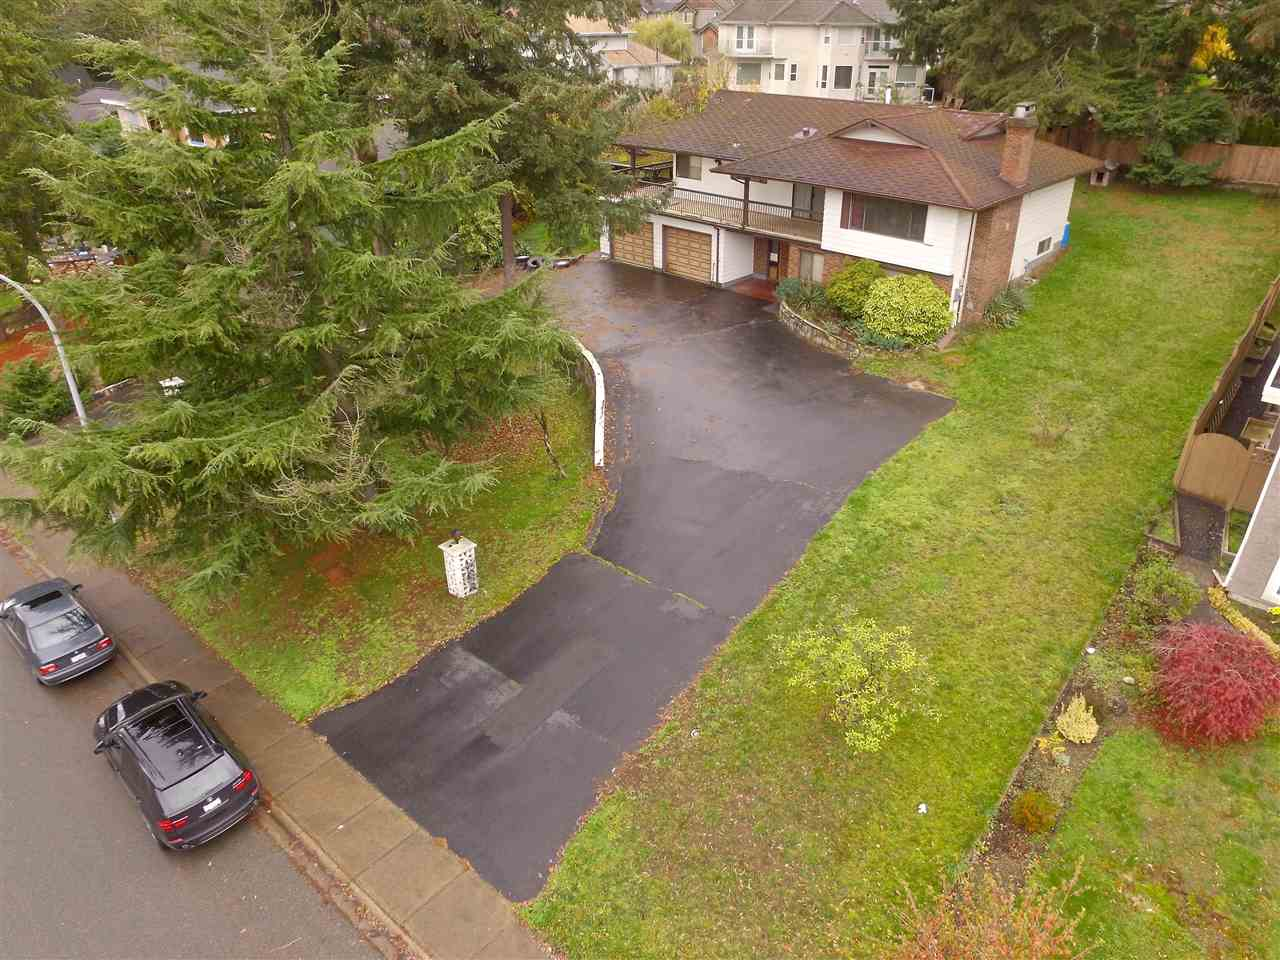 "Photo 2: 16495 78 Avenue in Surrey: Fleetwood Tynehead House for sale in ""FLEETWOOD"" : MLS® # R2122962"